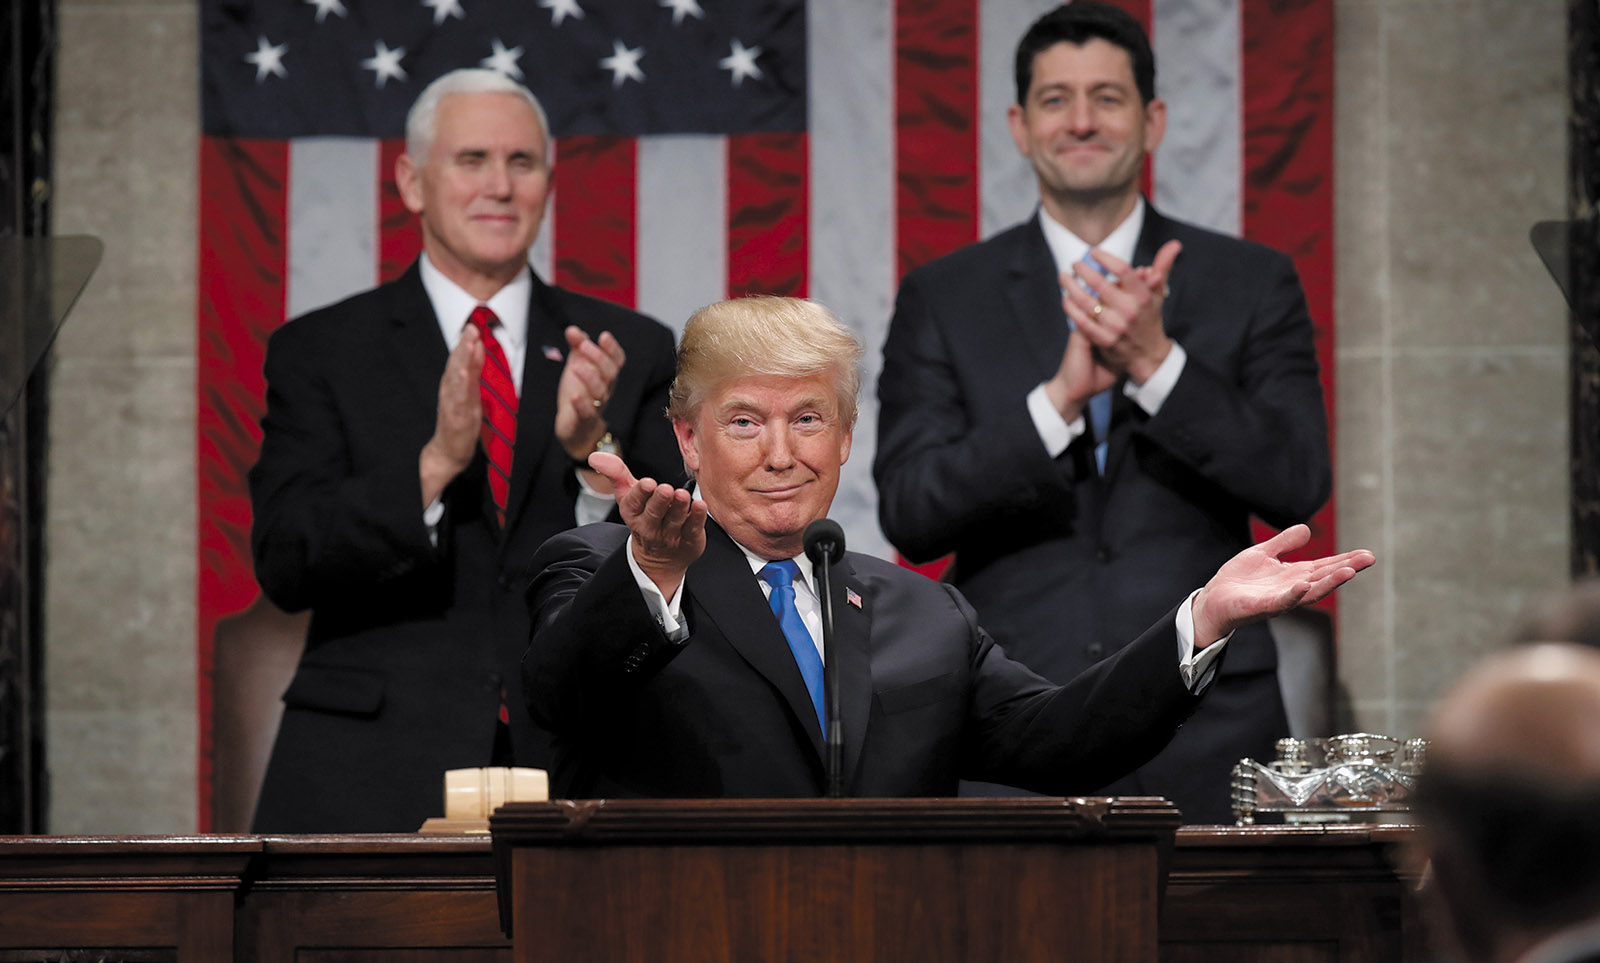 Donald Trump delivering the State of the Union address, Washington, D.C., January 2018